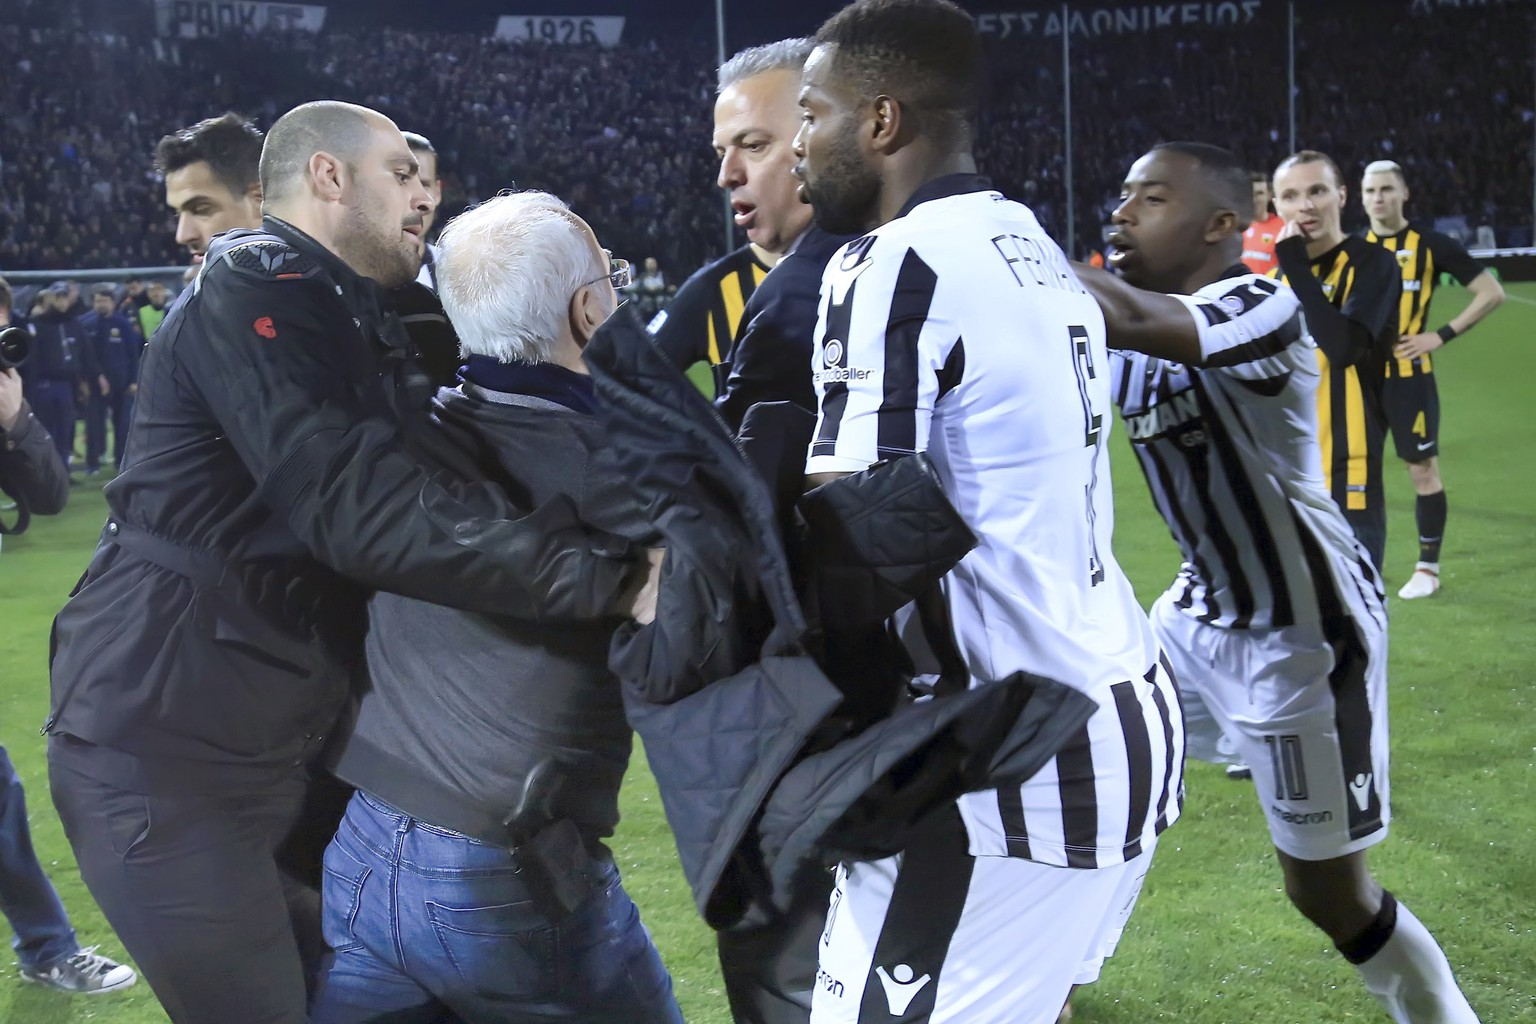 PAOK owner, businessman Ivan Savvidis, second from left, approaches AEK Athens' Manager Operation Department Vassilis Dimitriadis, center, as his bodyguard and PAOK's players Fernando Varela, second from right, and Djalma Campos, right, try to stop him during a Greek League soccer match between PAOK and AEK Athens in the northern Greek city of Thessaloniki, Sunday, March 11, 2018. A disputed goal at the end of the Greek league match led to a pitch invasion by Savvidis, who appeared to be carrying a gun. Savvidis came on the field twice. It's unclear this photos shows his first time or second. (InTime Sports via AP)